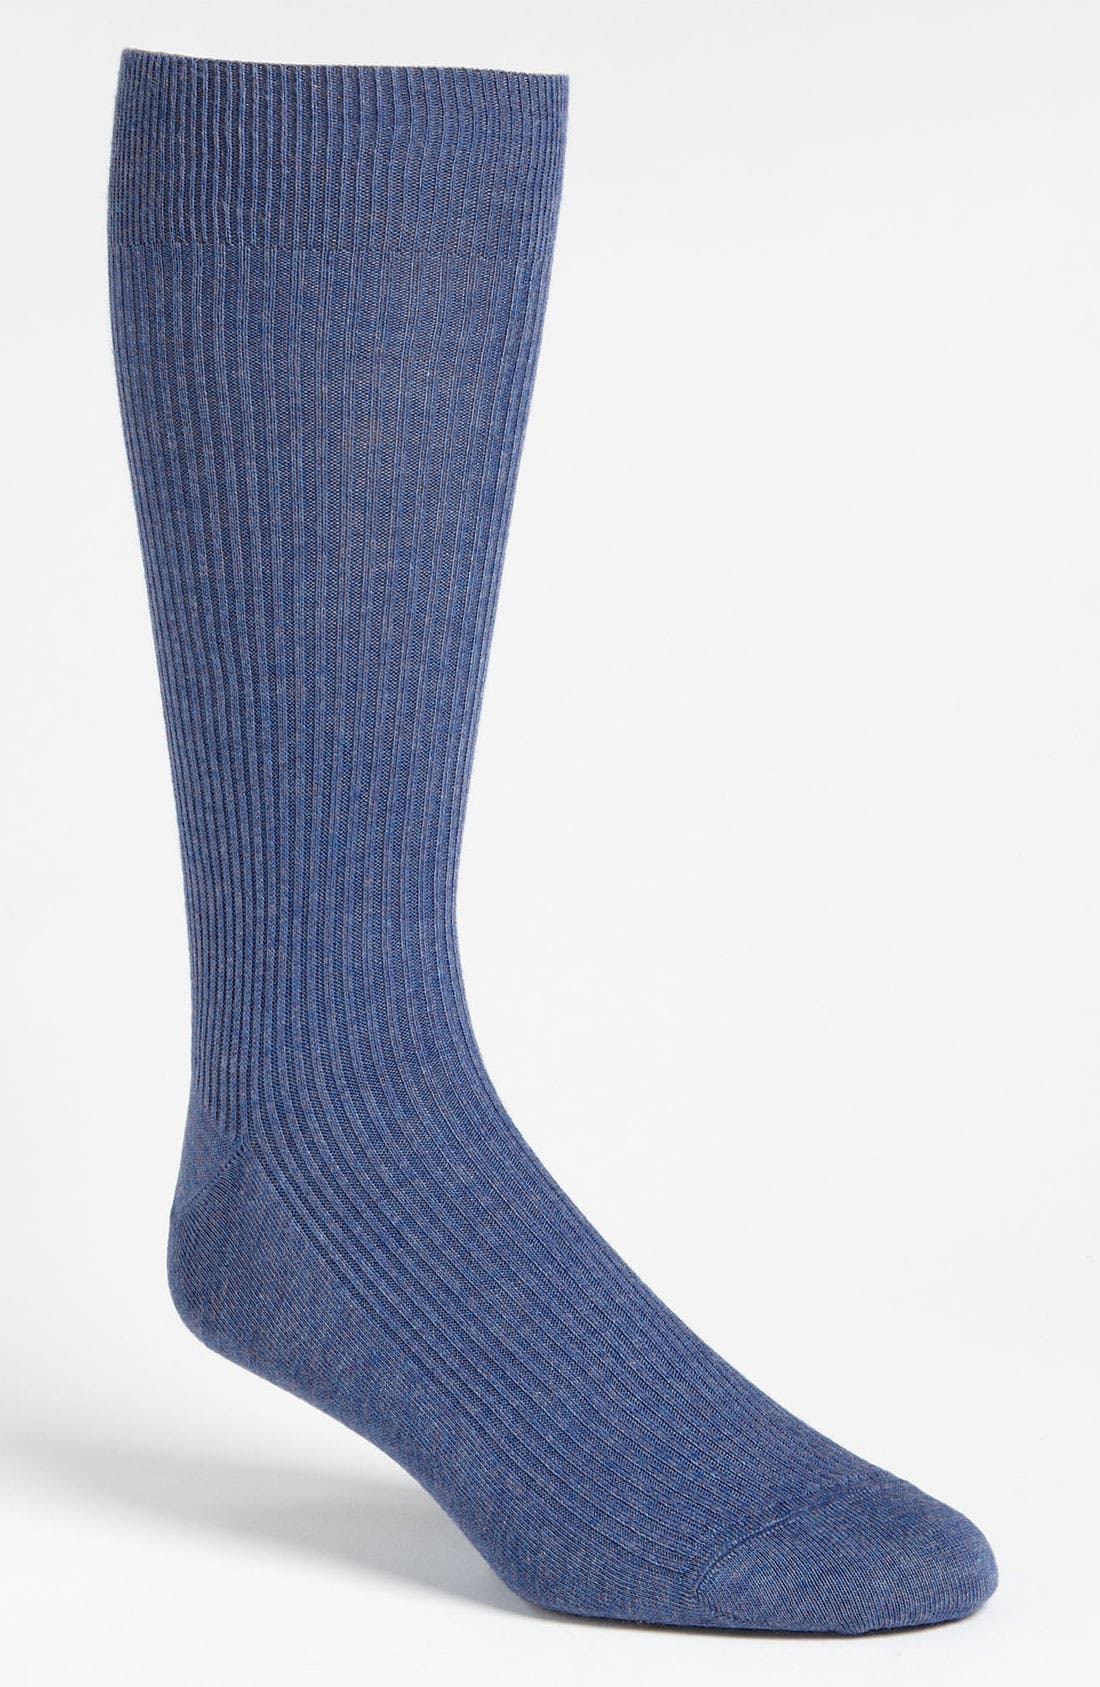 Main Image - Lorenzo Uomo Ribbed Socks